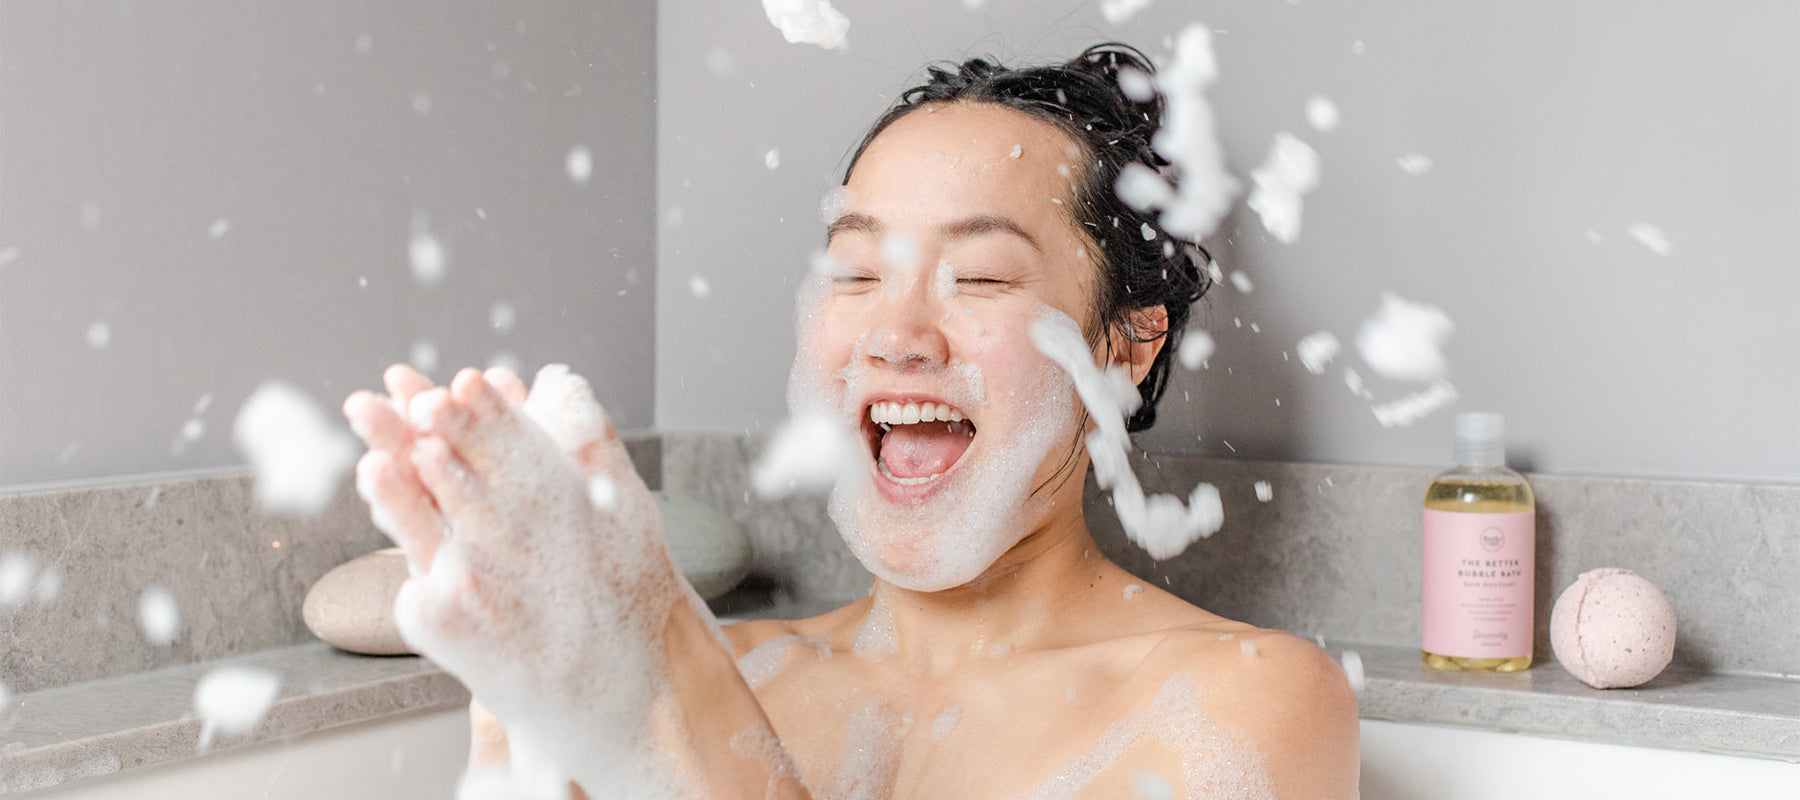 Woman clapping bubbles together laughing in bath.